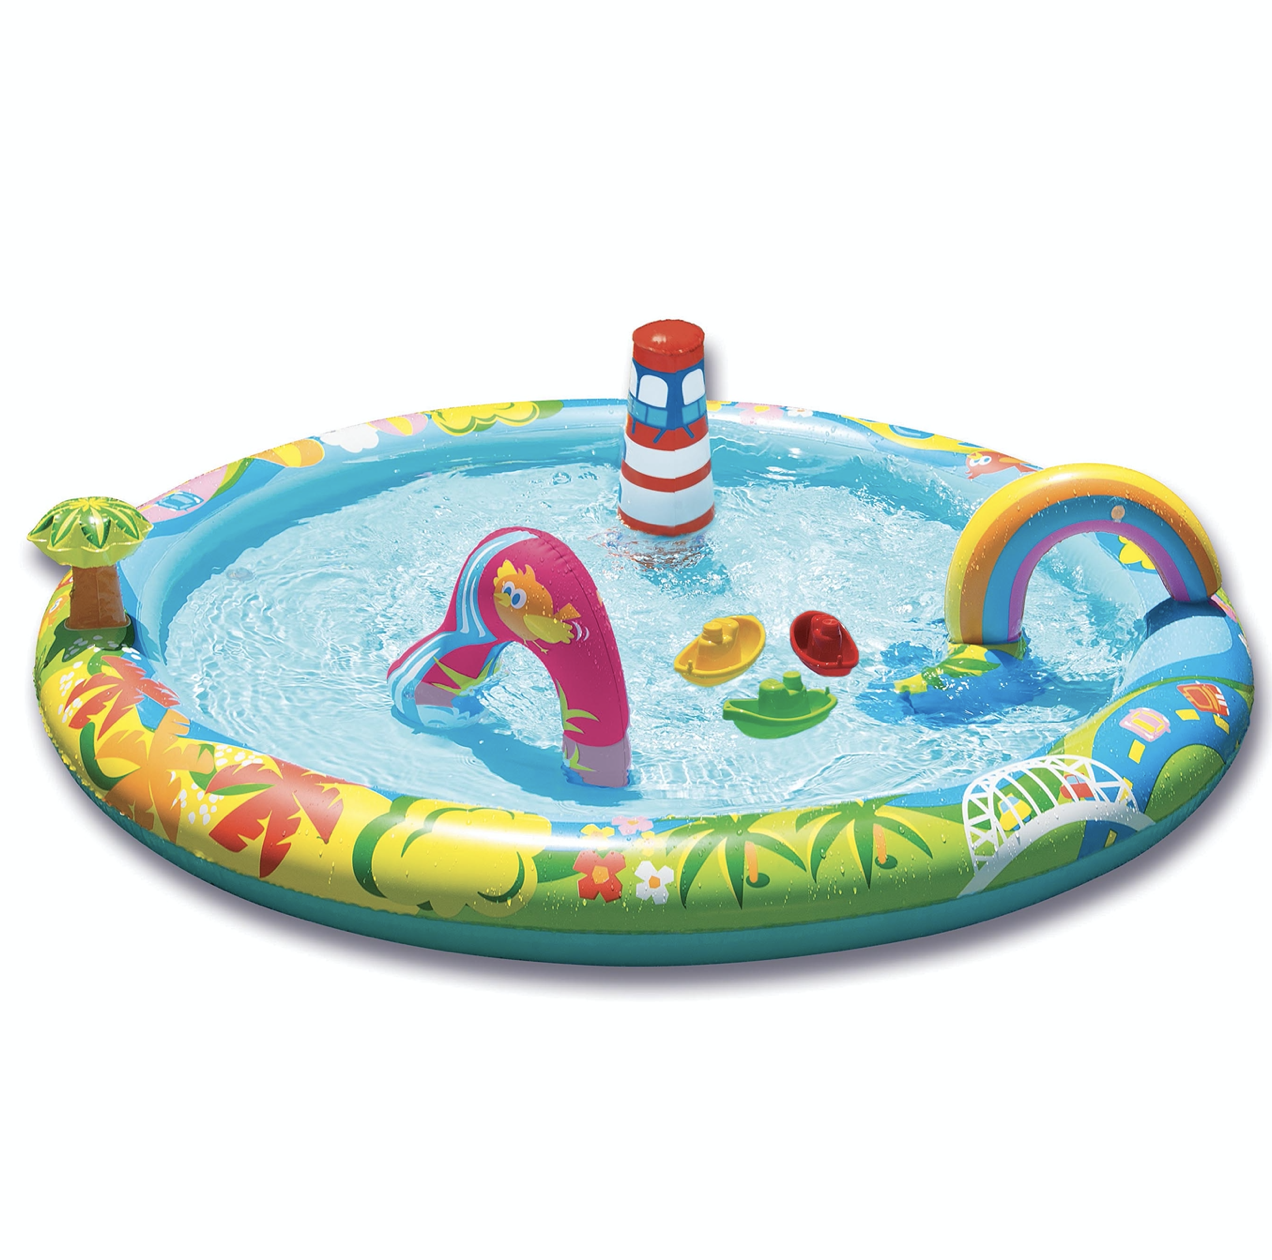 18 Best Kiddie Pools For Kids In 2021 Today